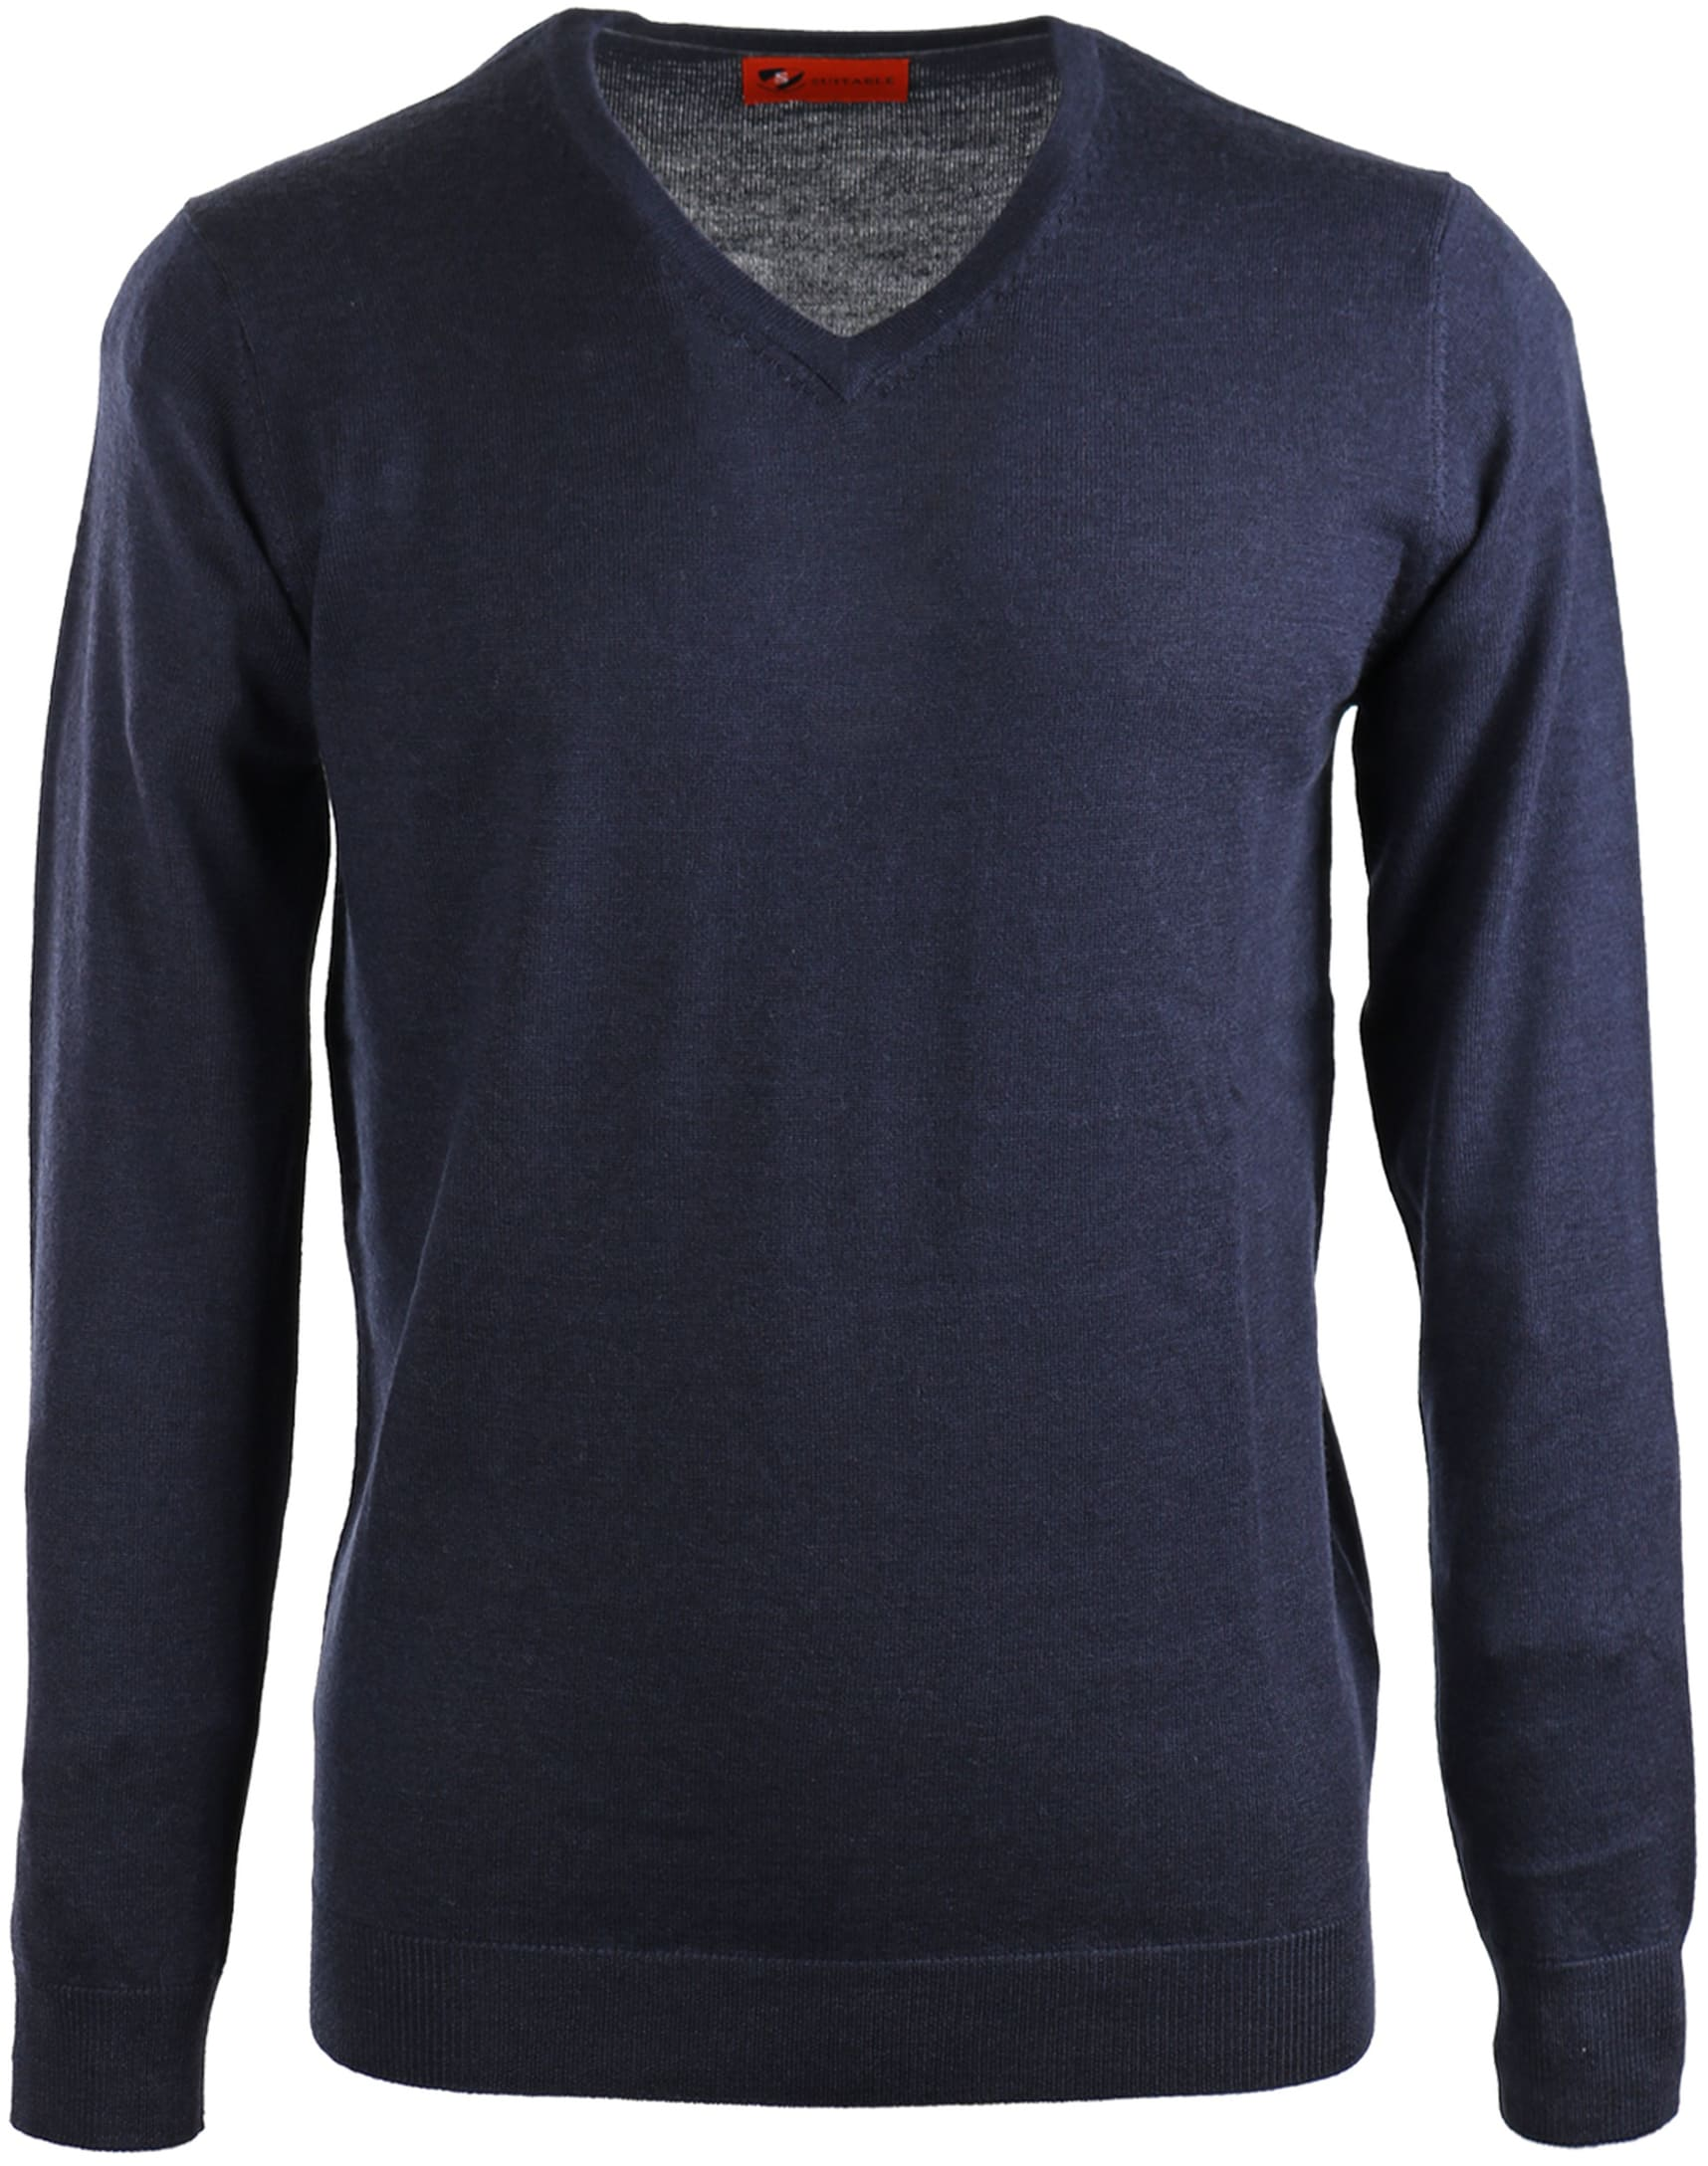 Suitable Pullover Merino Wol Donkerblauw foto 0